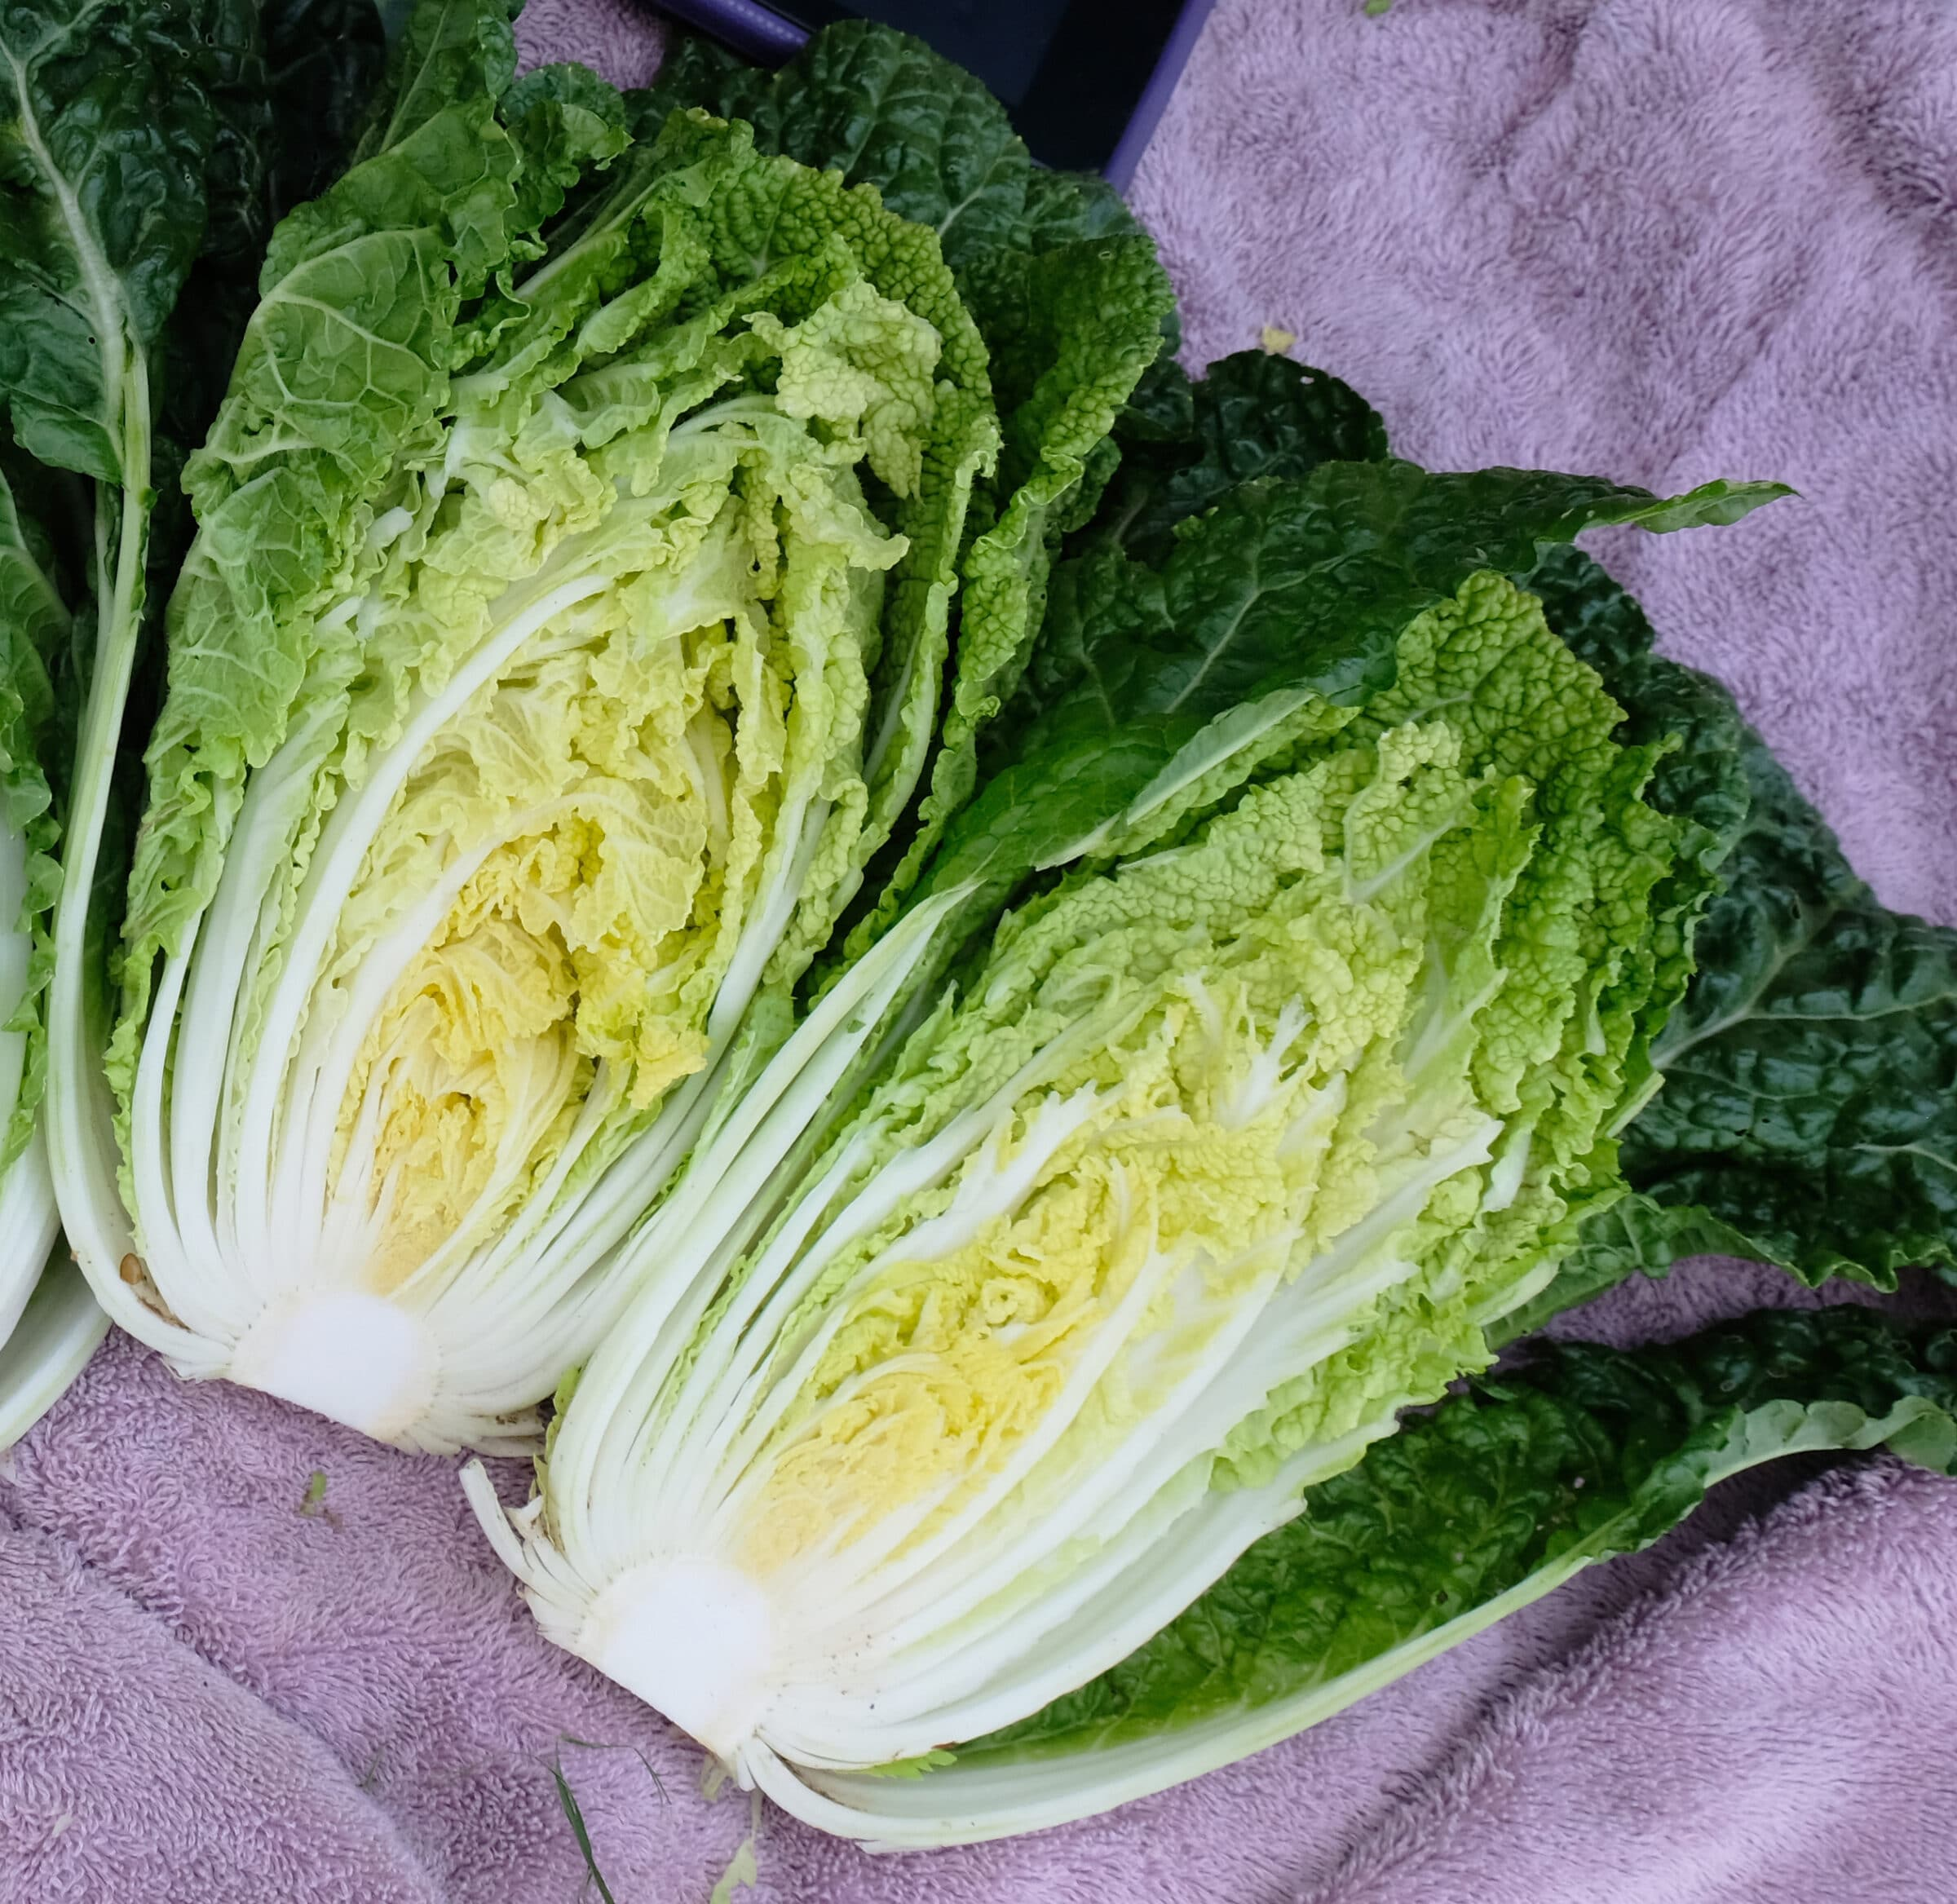 Wawa Tsai Chinese Cabbage Not Treated Seedway